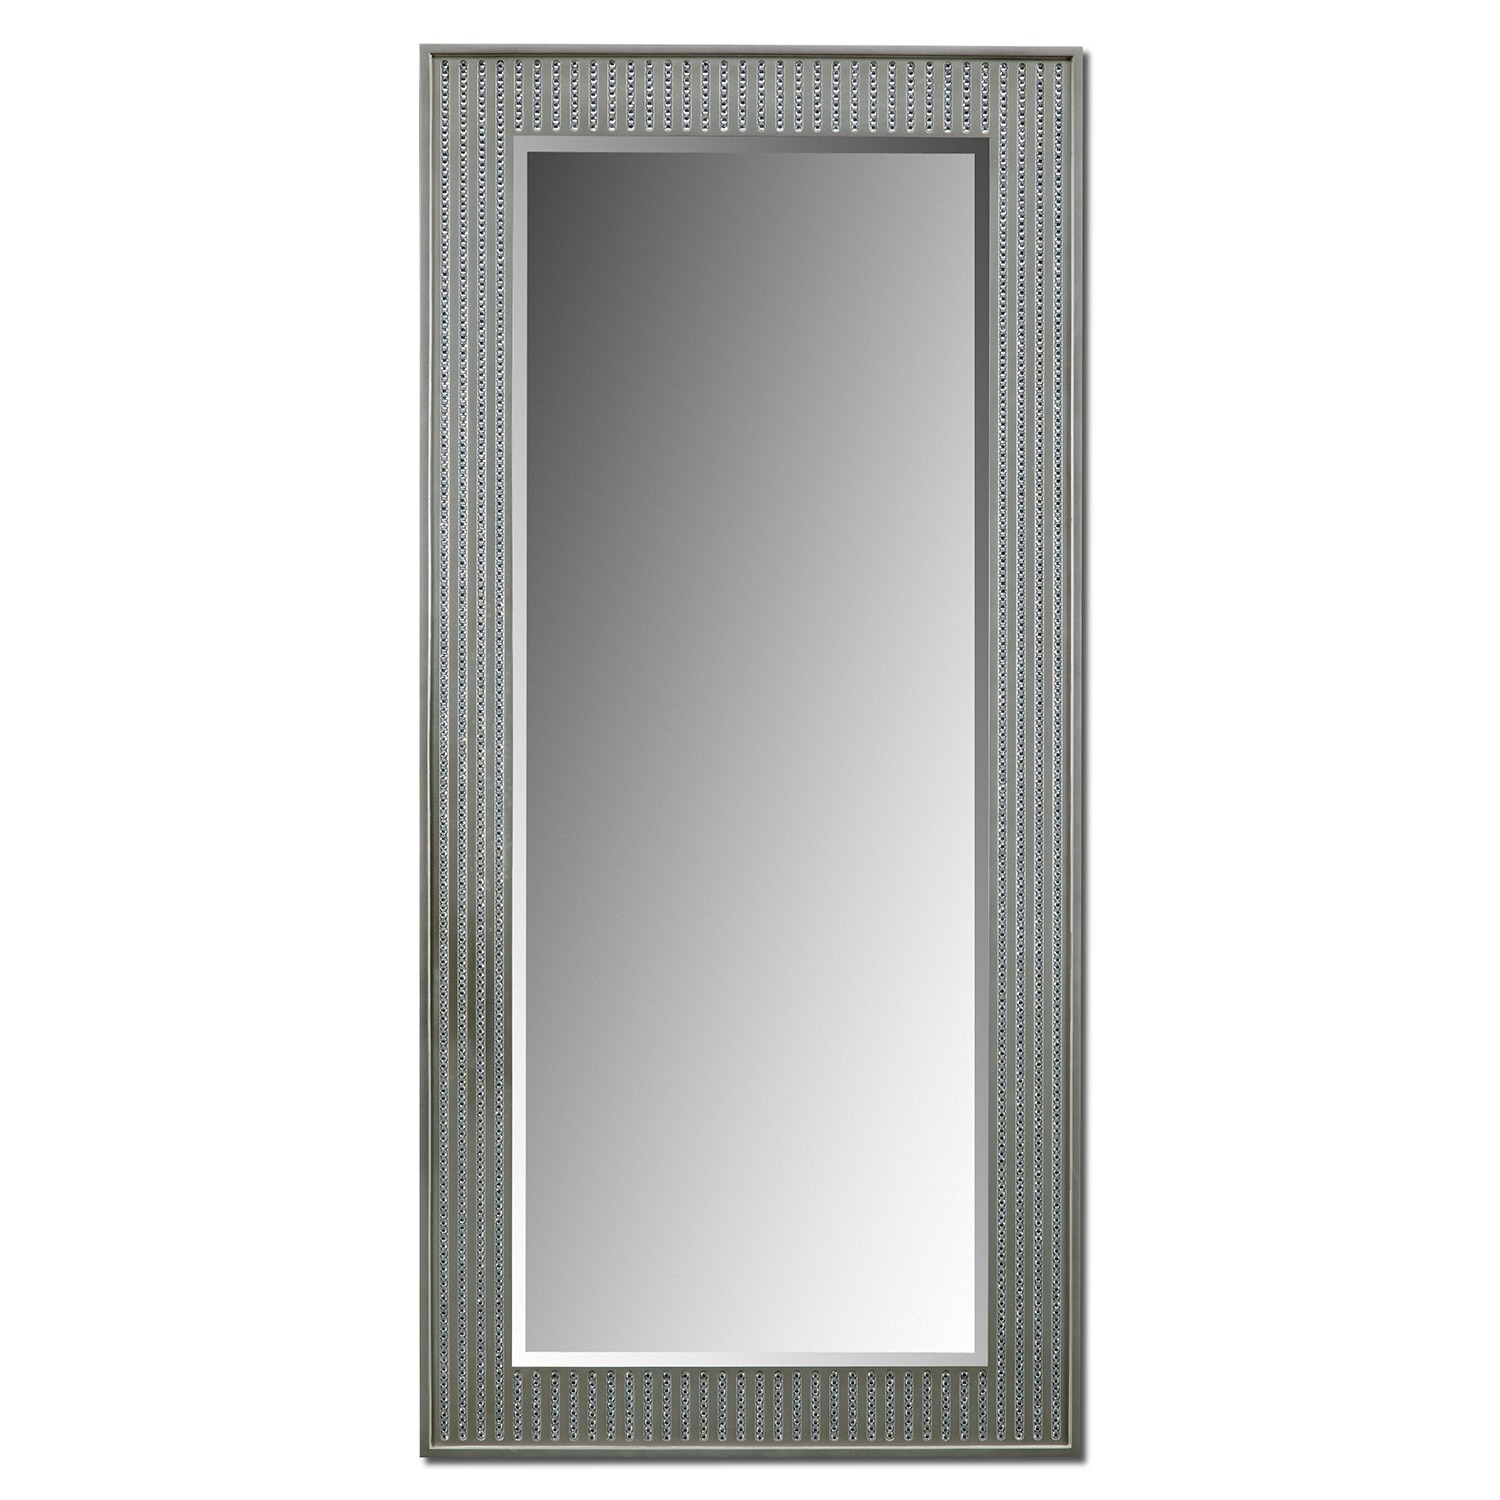 Bling Glam Floor Mirror Silver Value City Furniture Regarding Bling Floor Mirror (Image 5 of 15)